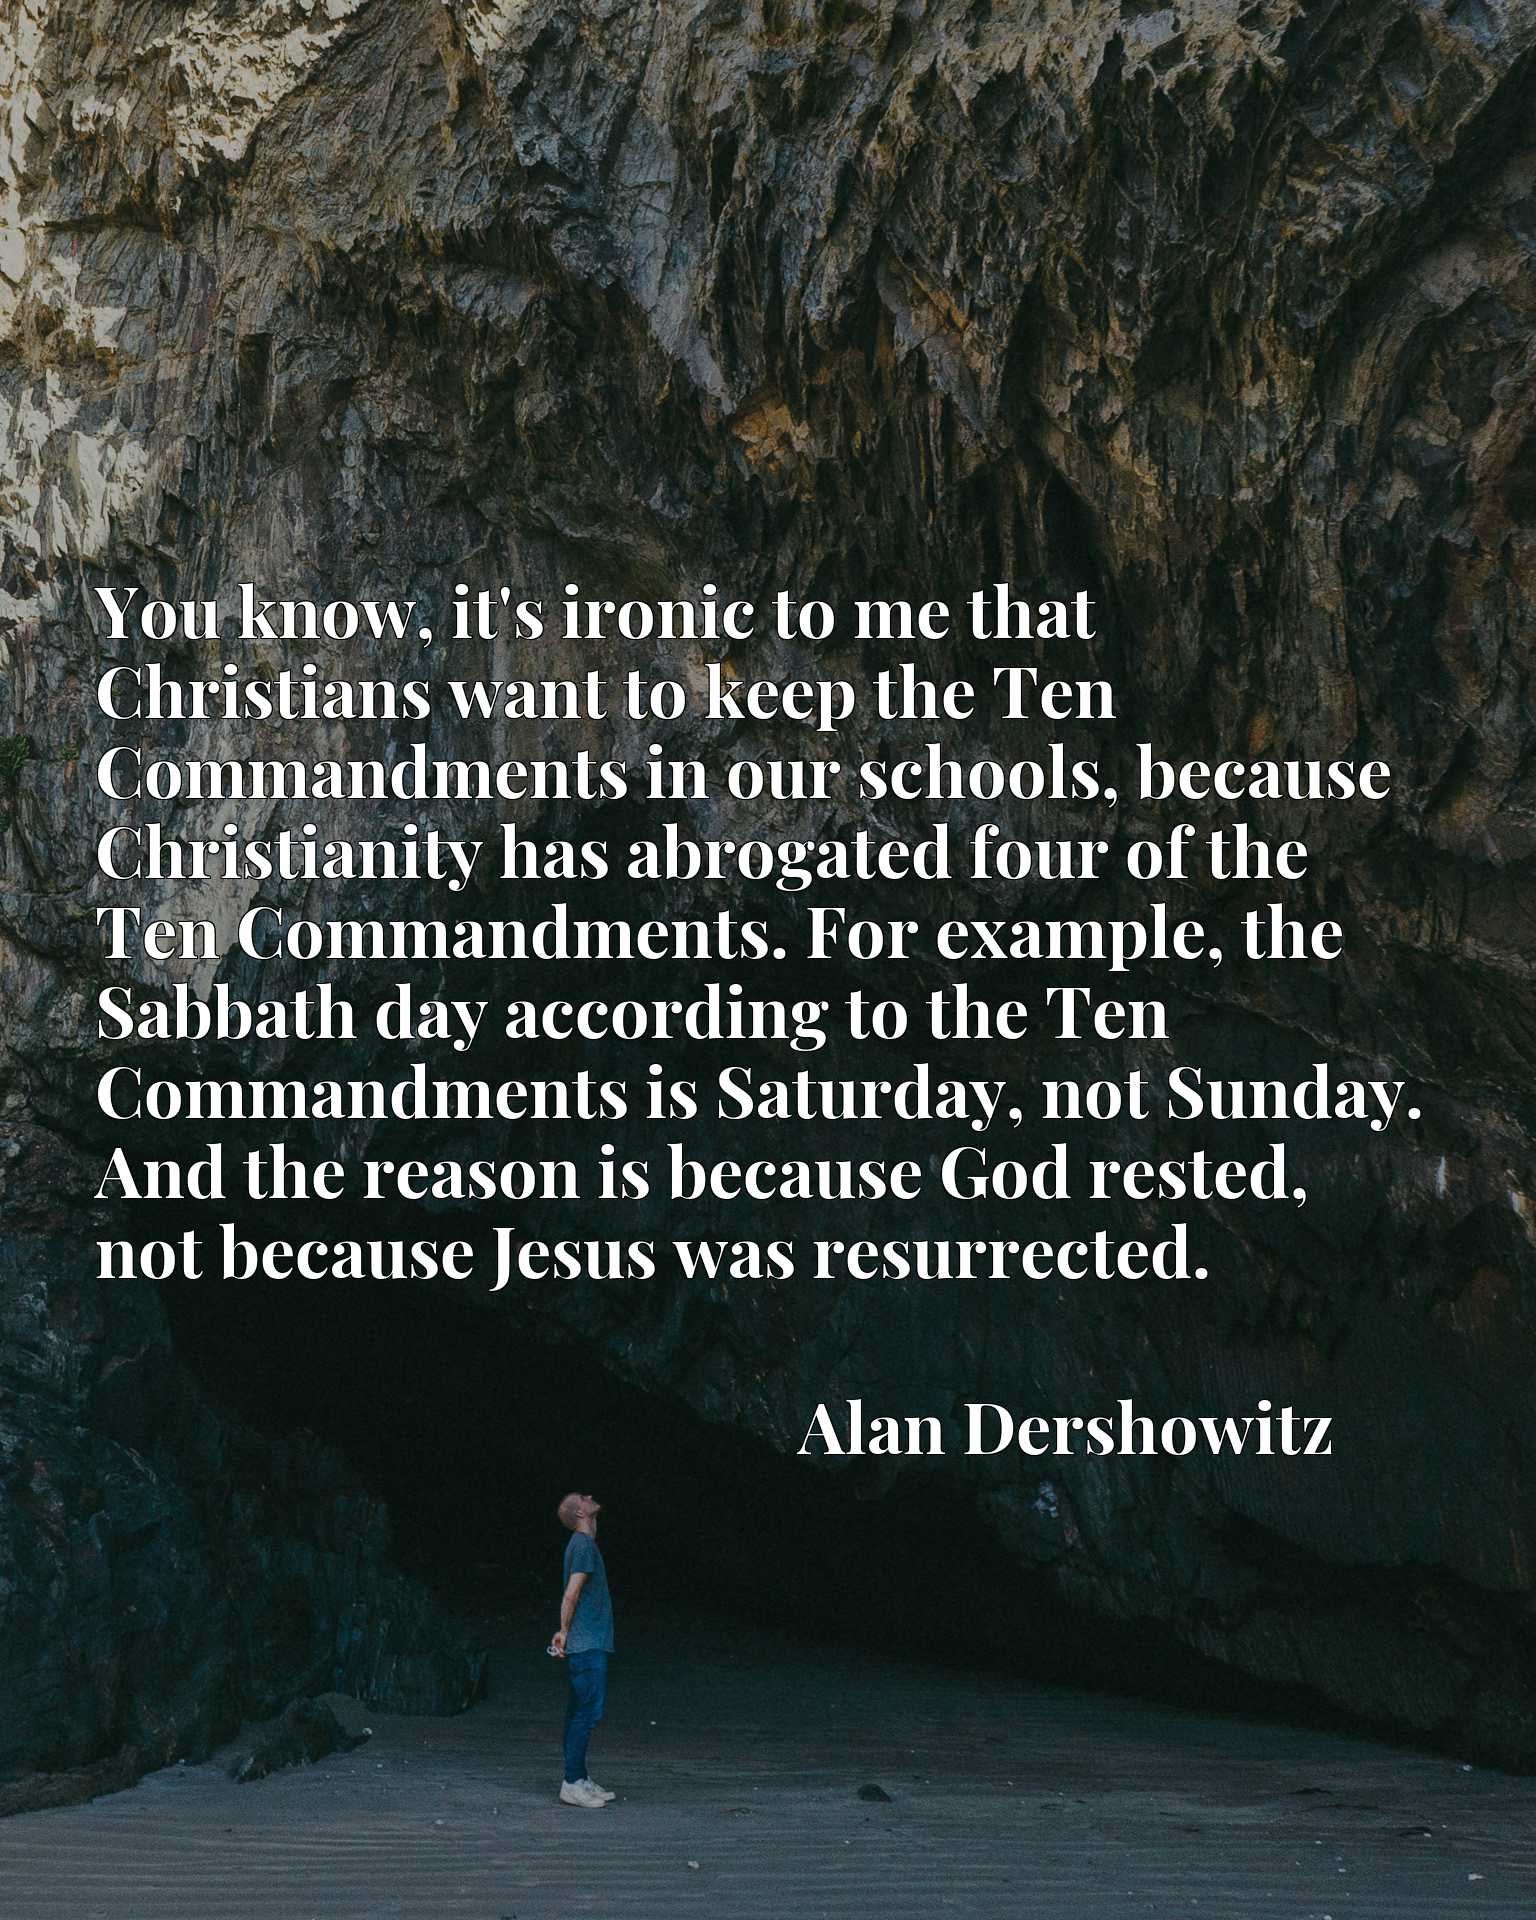 You know, it's ironic to me that Christians want to keep the Ten Commandments in our schools, because Christianity has abrogated four of the Ten Commandments. For example, the Sabbath day according to the Ten Commandments is Saturday, not Sunday. And the reason is because God rested, not because Jesus was resurrected.